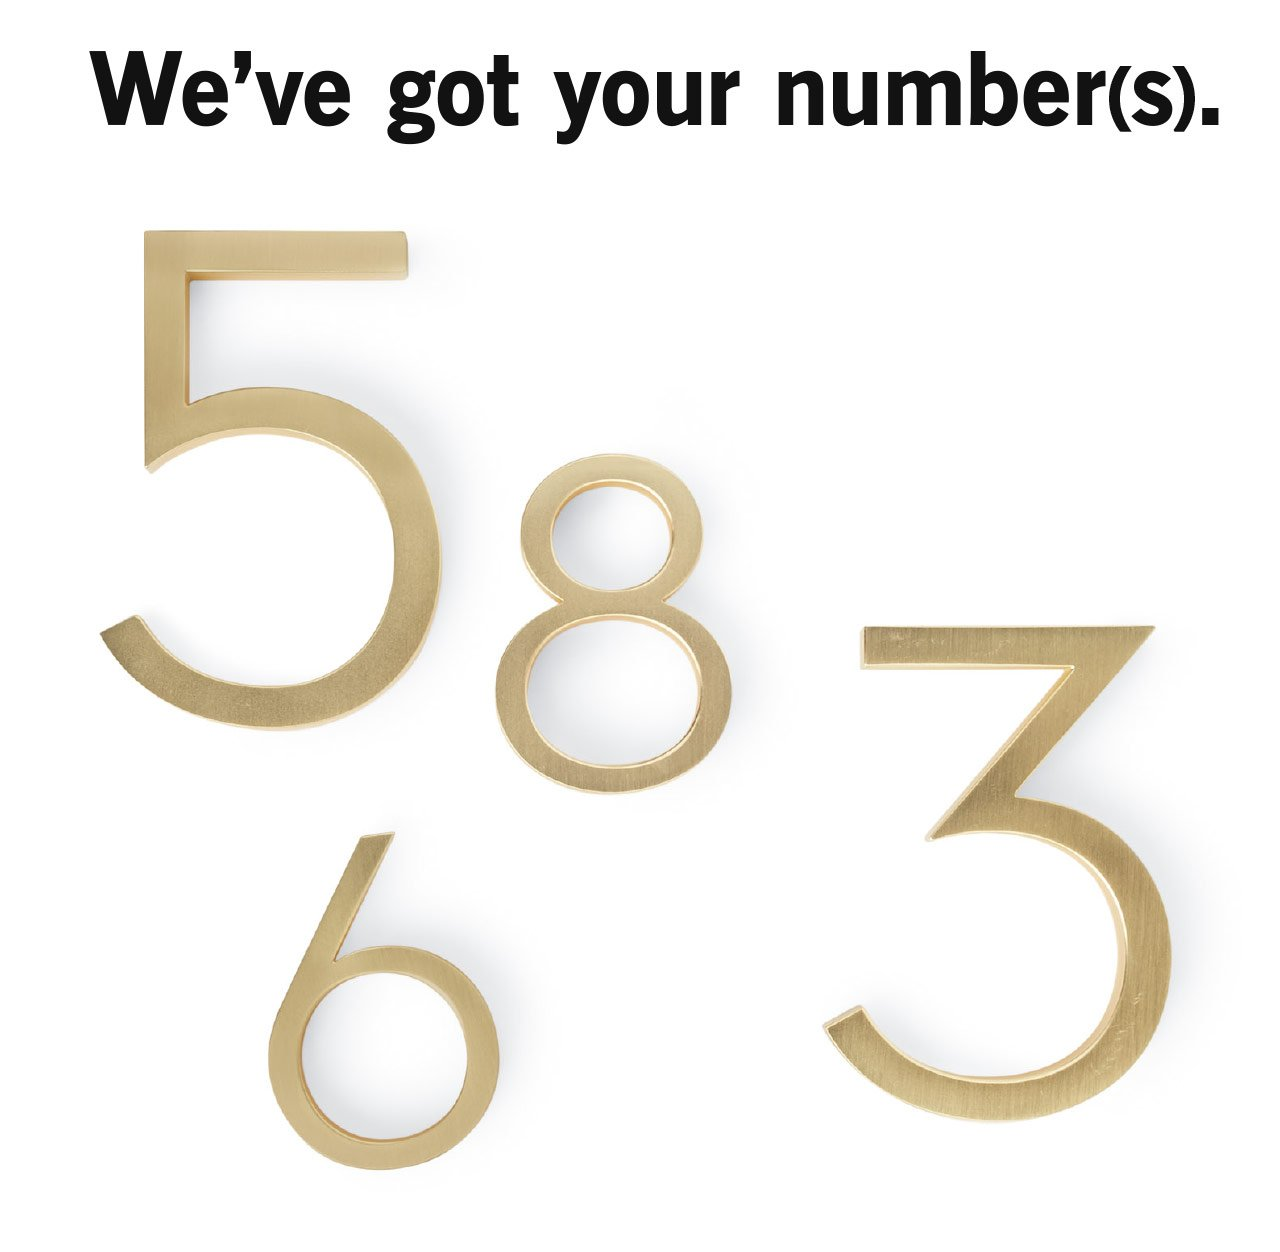 Modern house numbers fabulous home depot modern house for Modern house numbers home depot